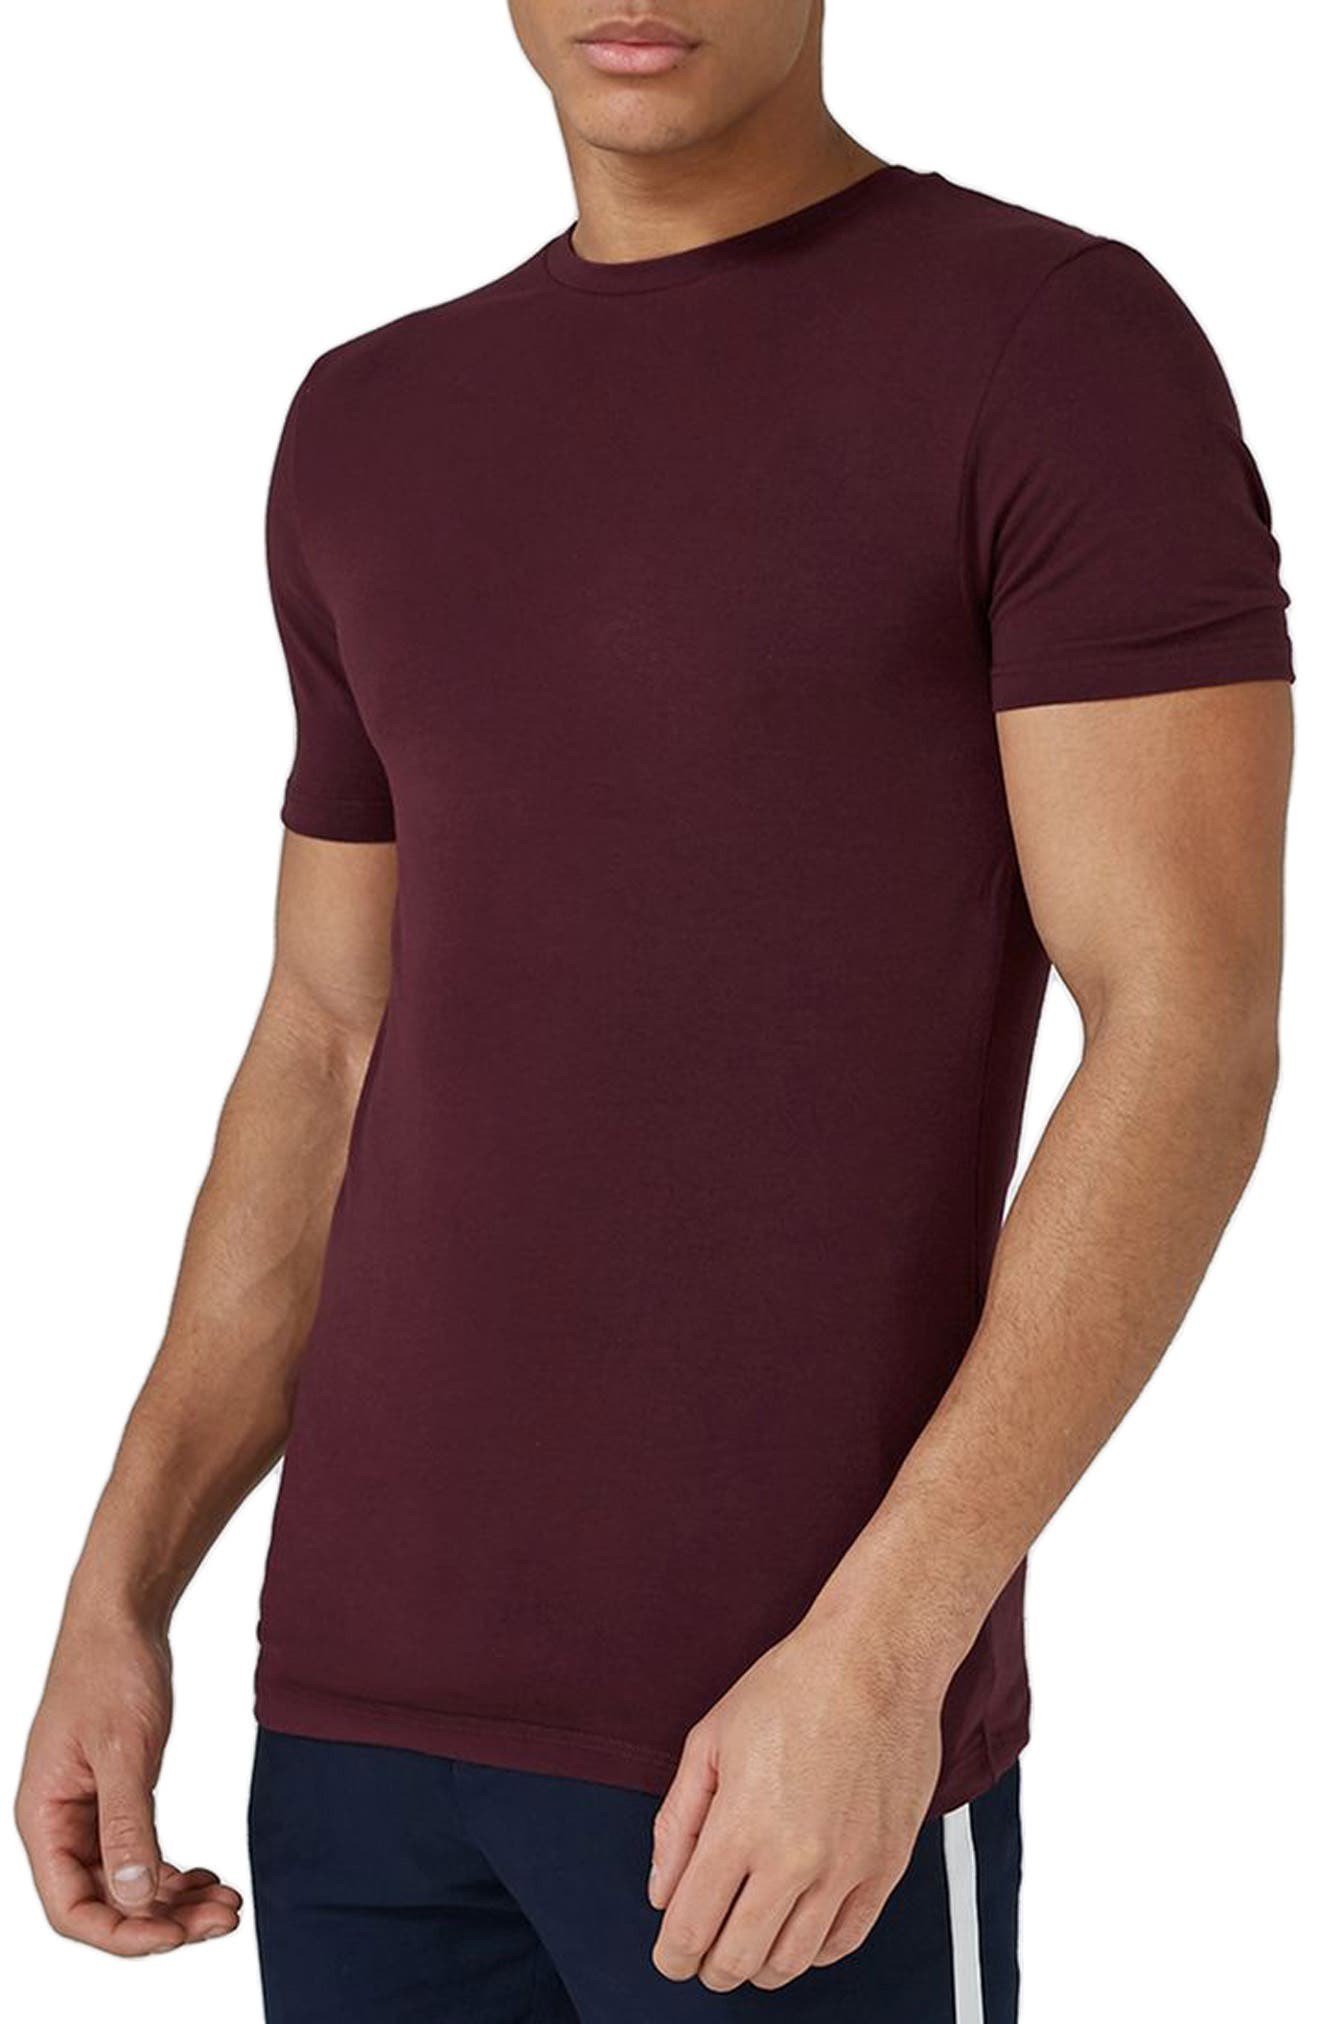 Ultra Muscle Fit T-Shirt,                         Main,                         color, Burgundy